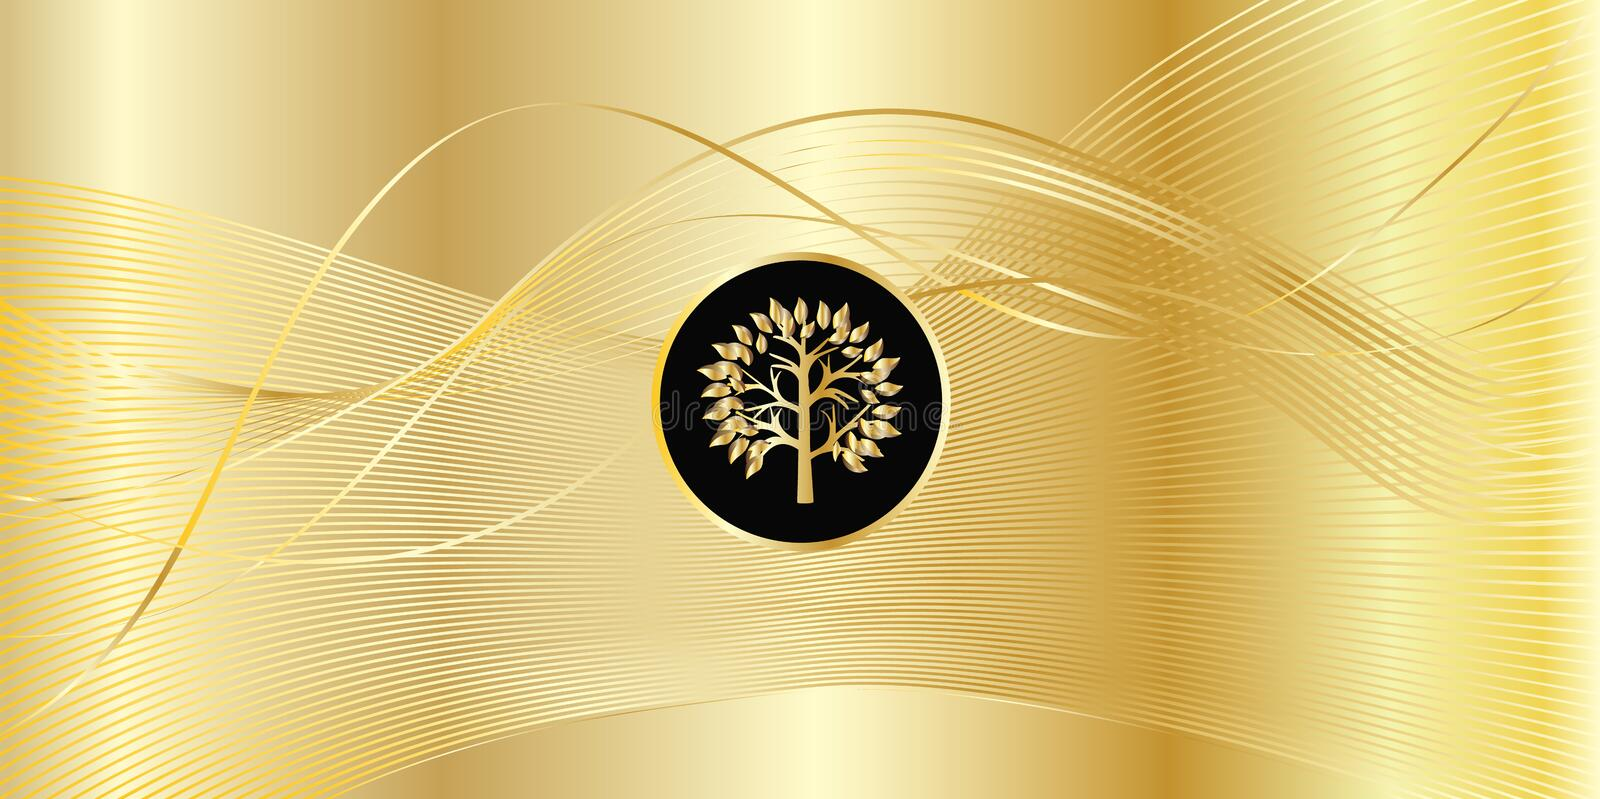 Gold wavy background. Gold waves background, vector. Abstract Digital vector illustration. Gold logo of tree on black circle frame and gold waves textured vector illustration